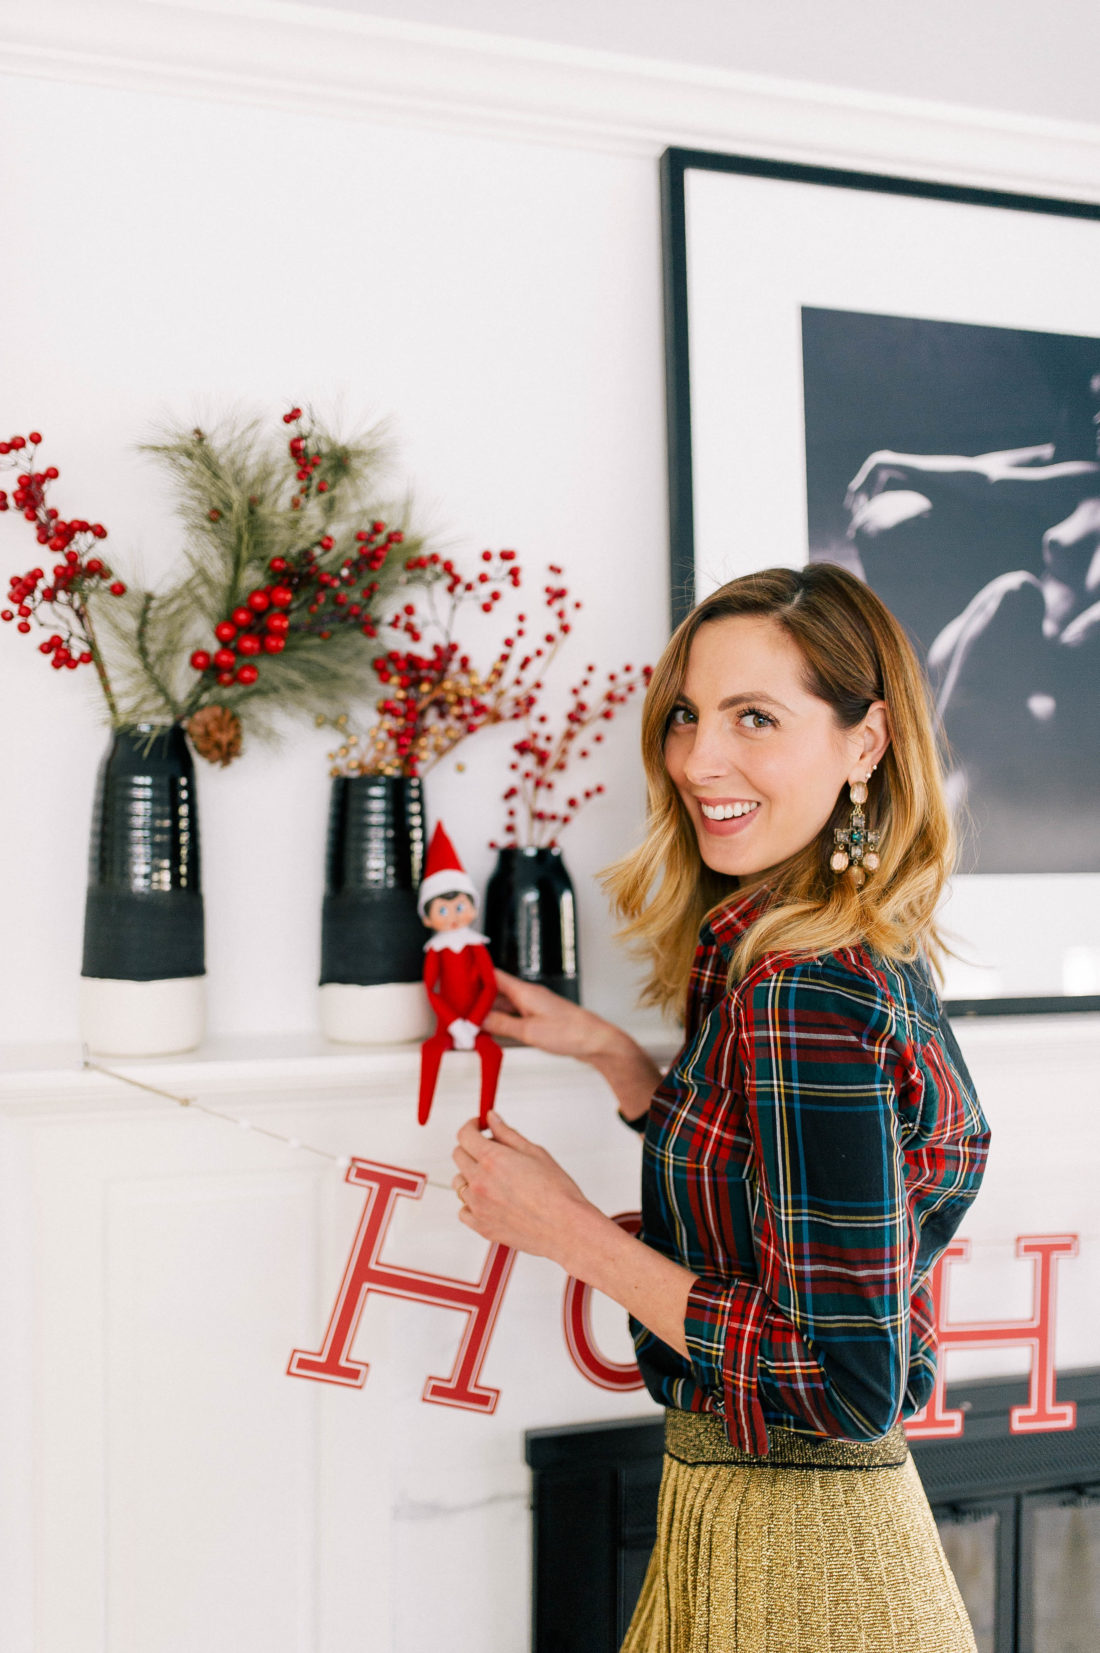 Eva Amurri Martino dresses up her kitchen mantel and places the Elf On The Shelf for the Christmas season